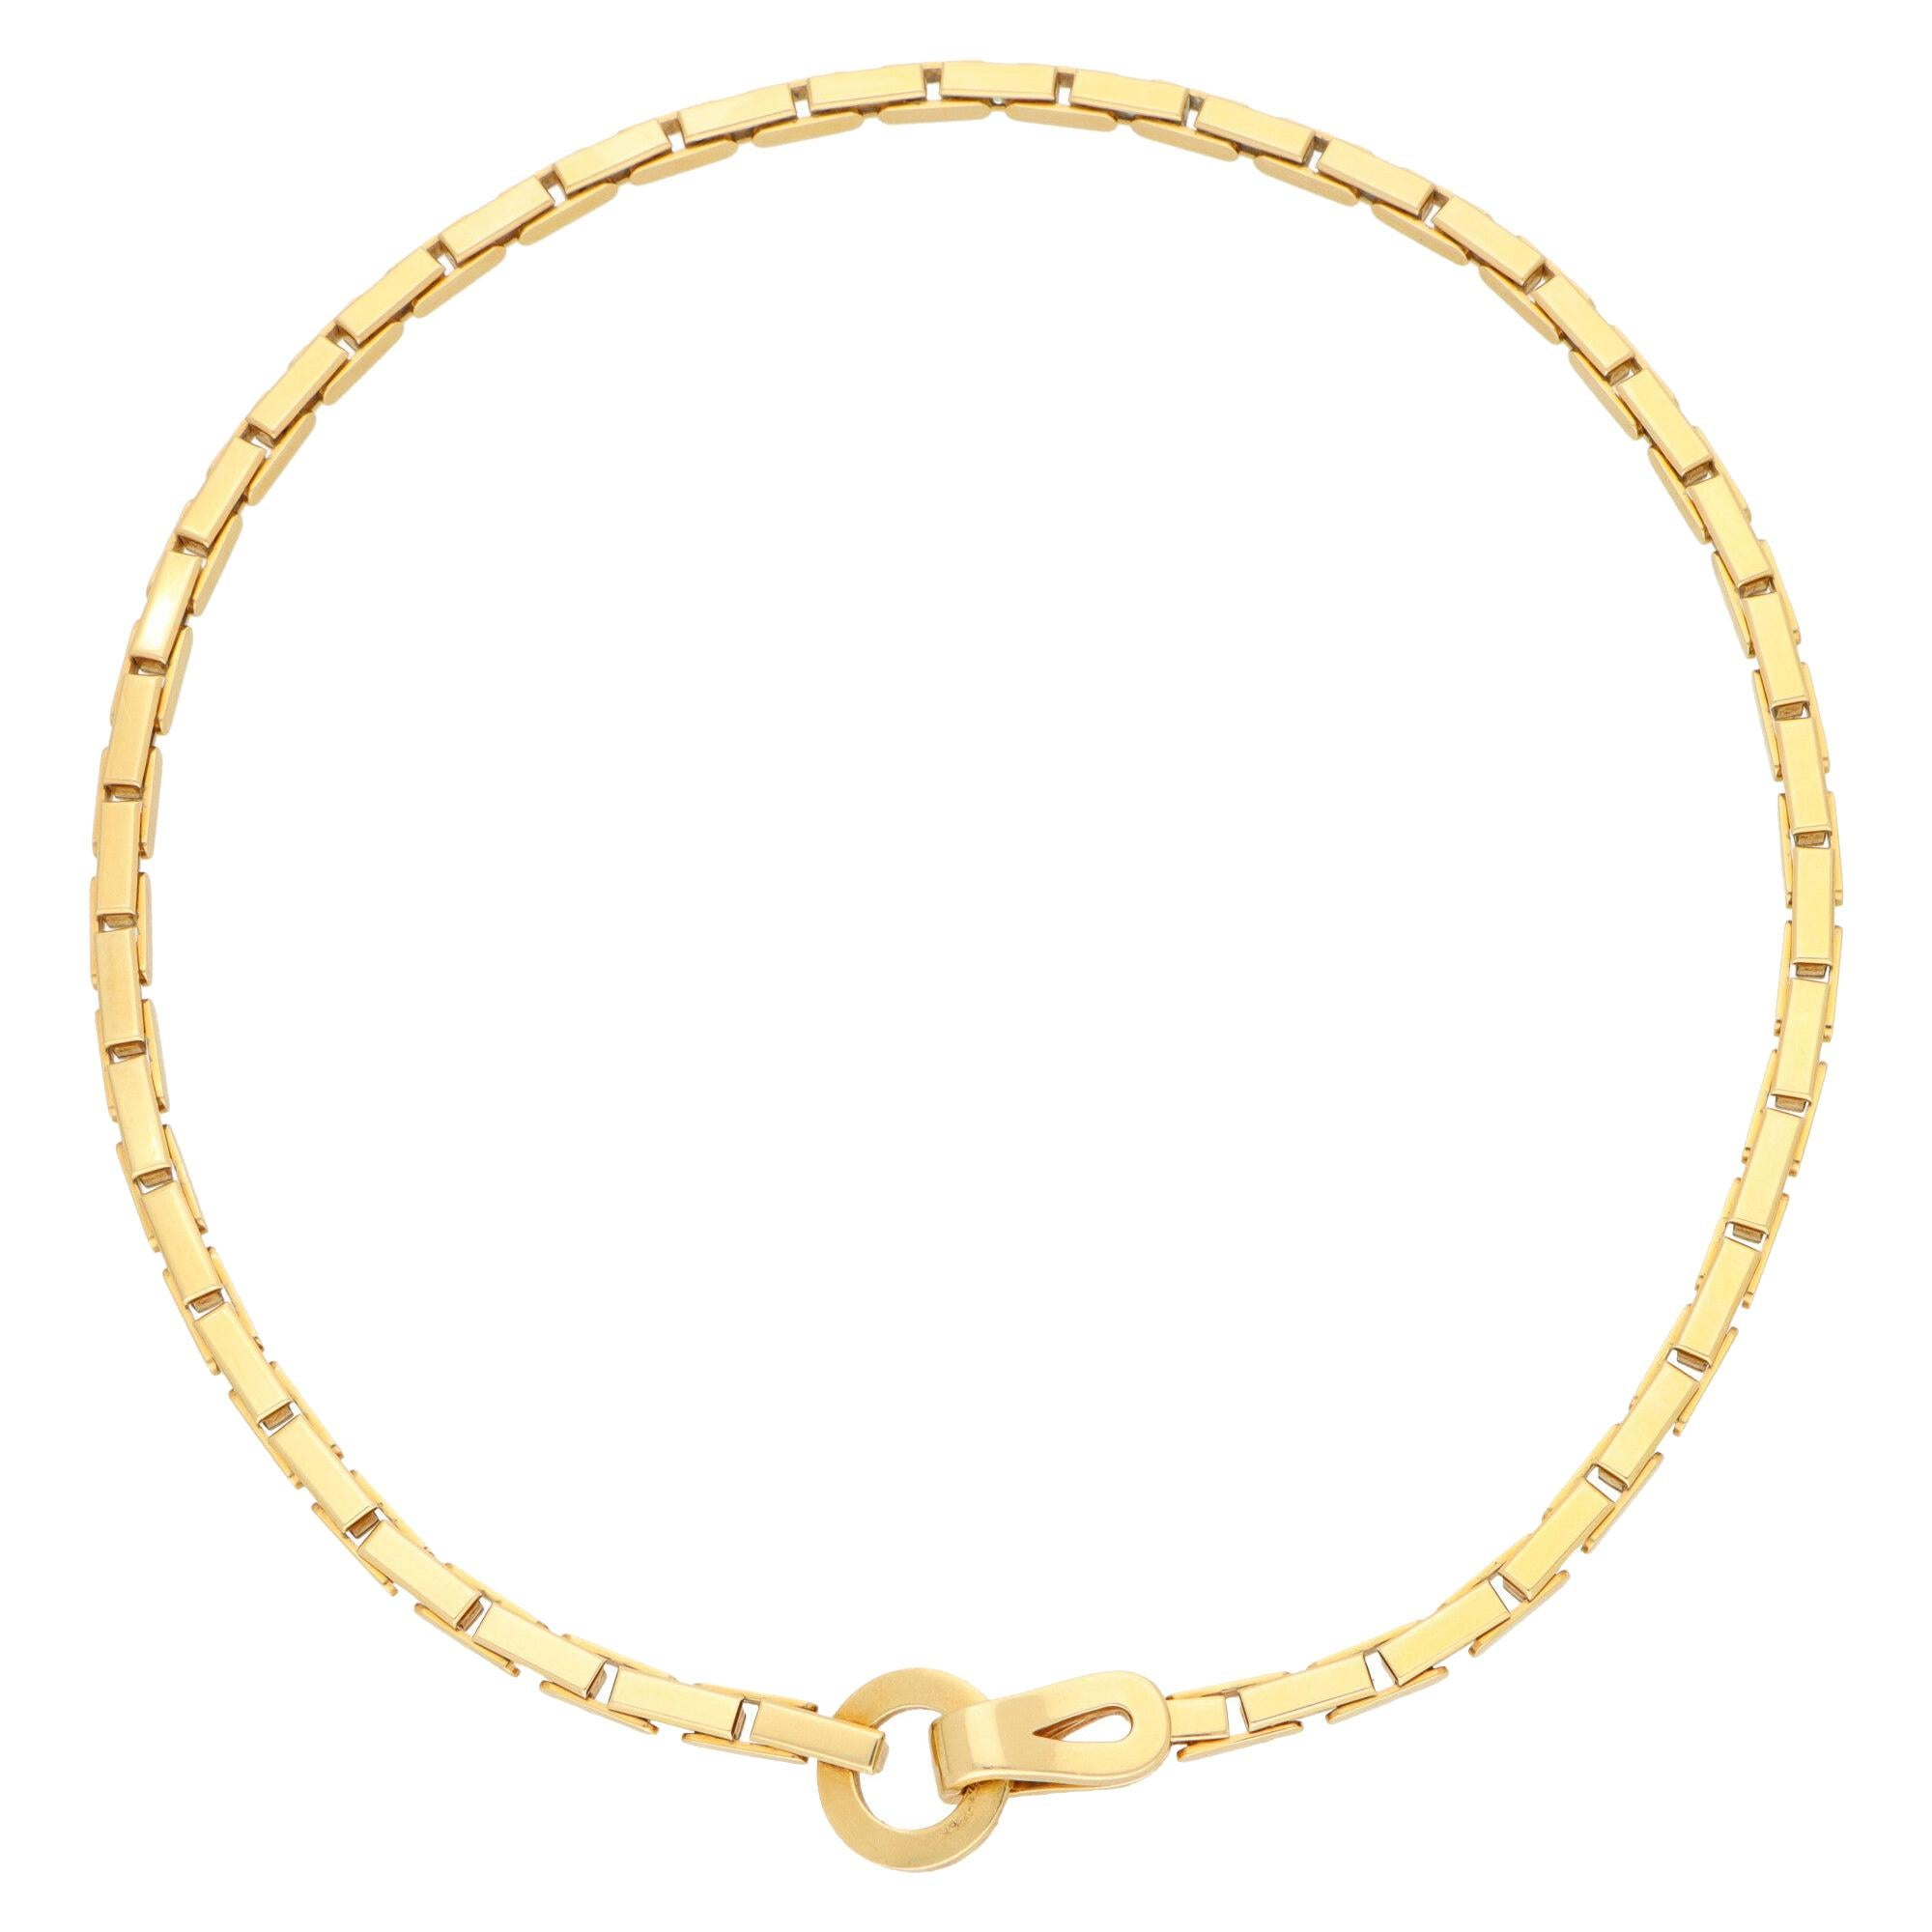 Vintage Cartier Agrafe Chunky Chain Necklace Set in 18k Yellow Gold